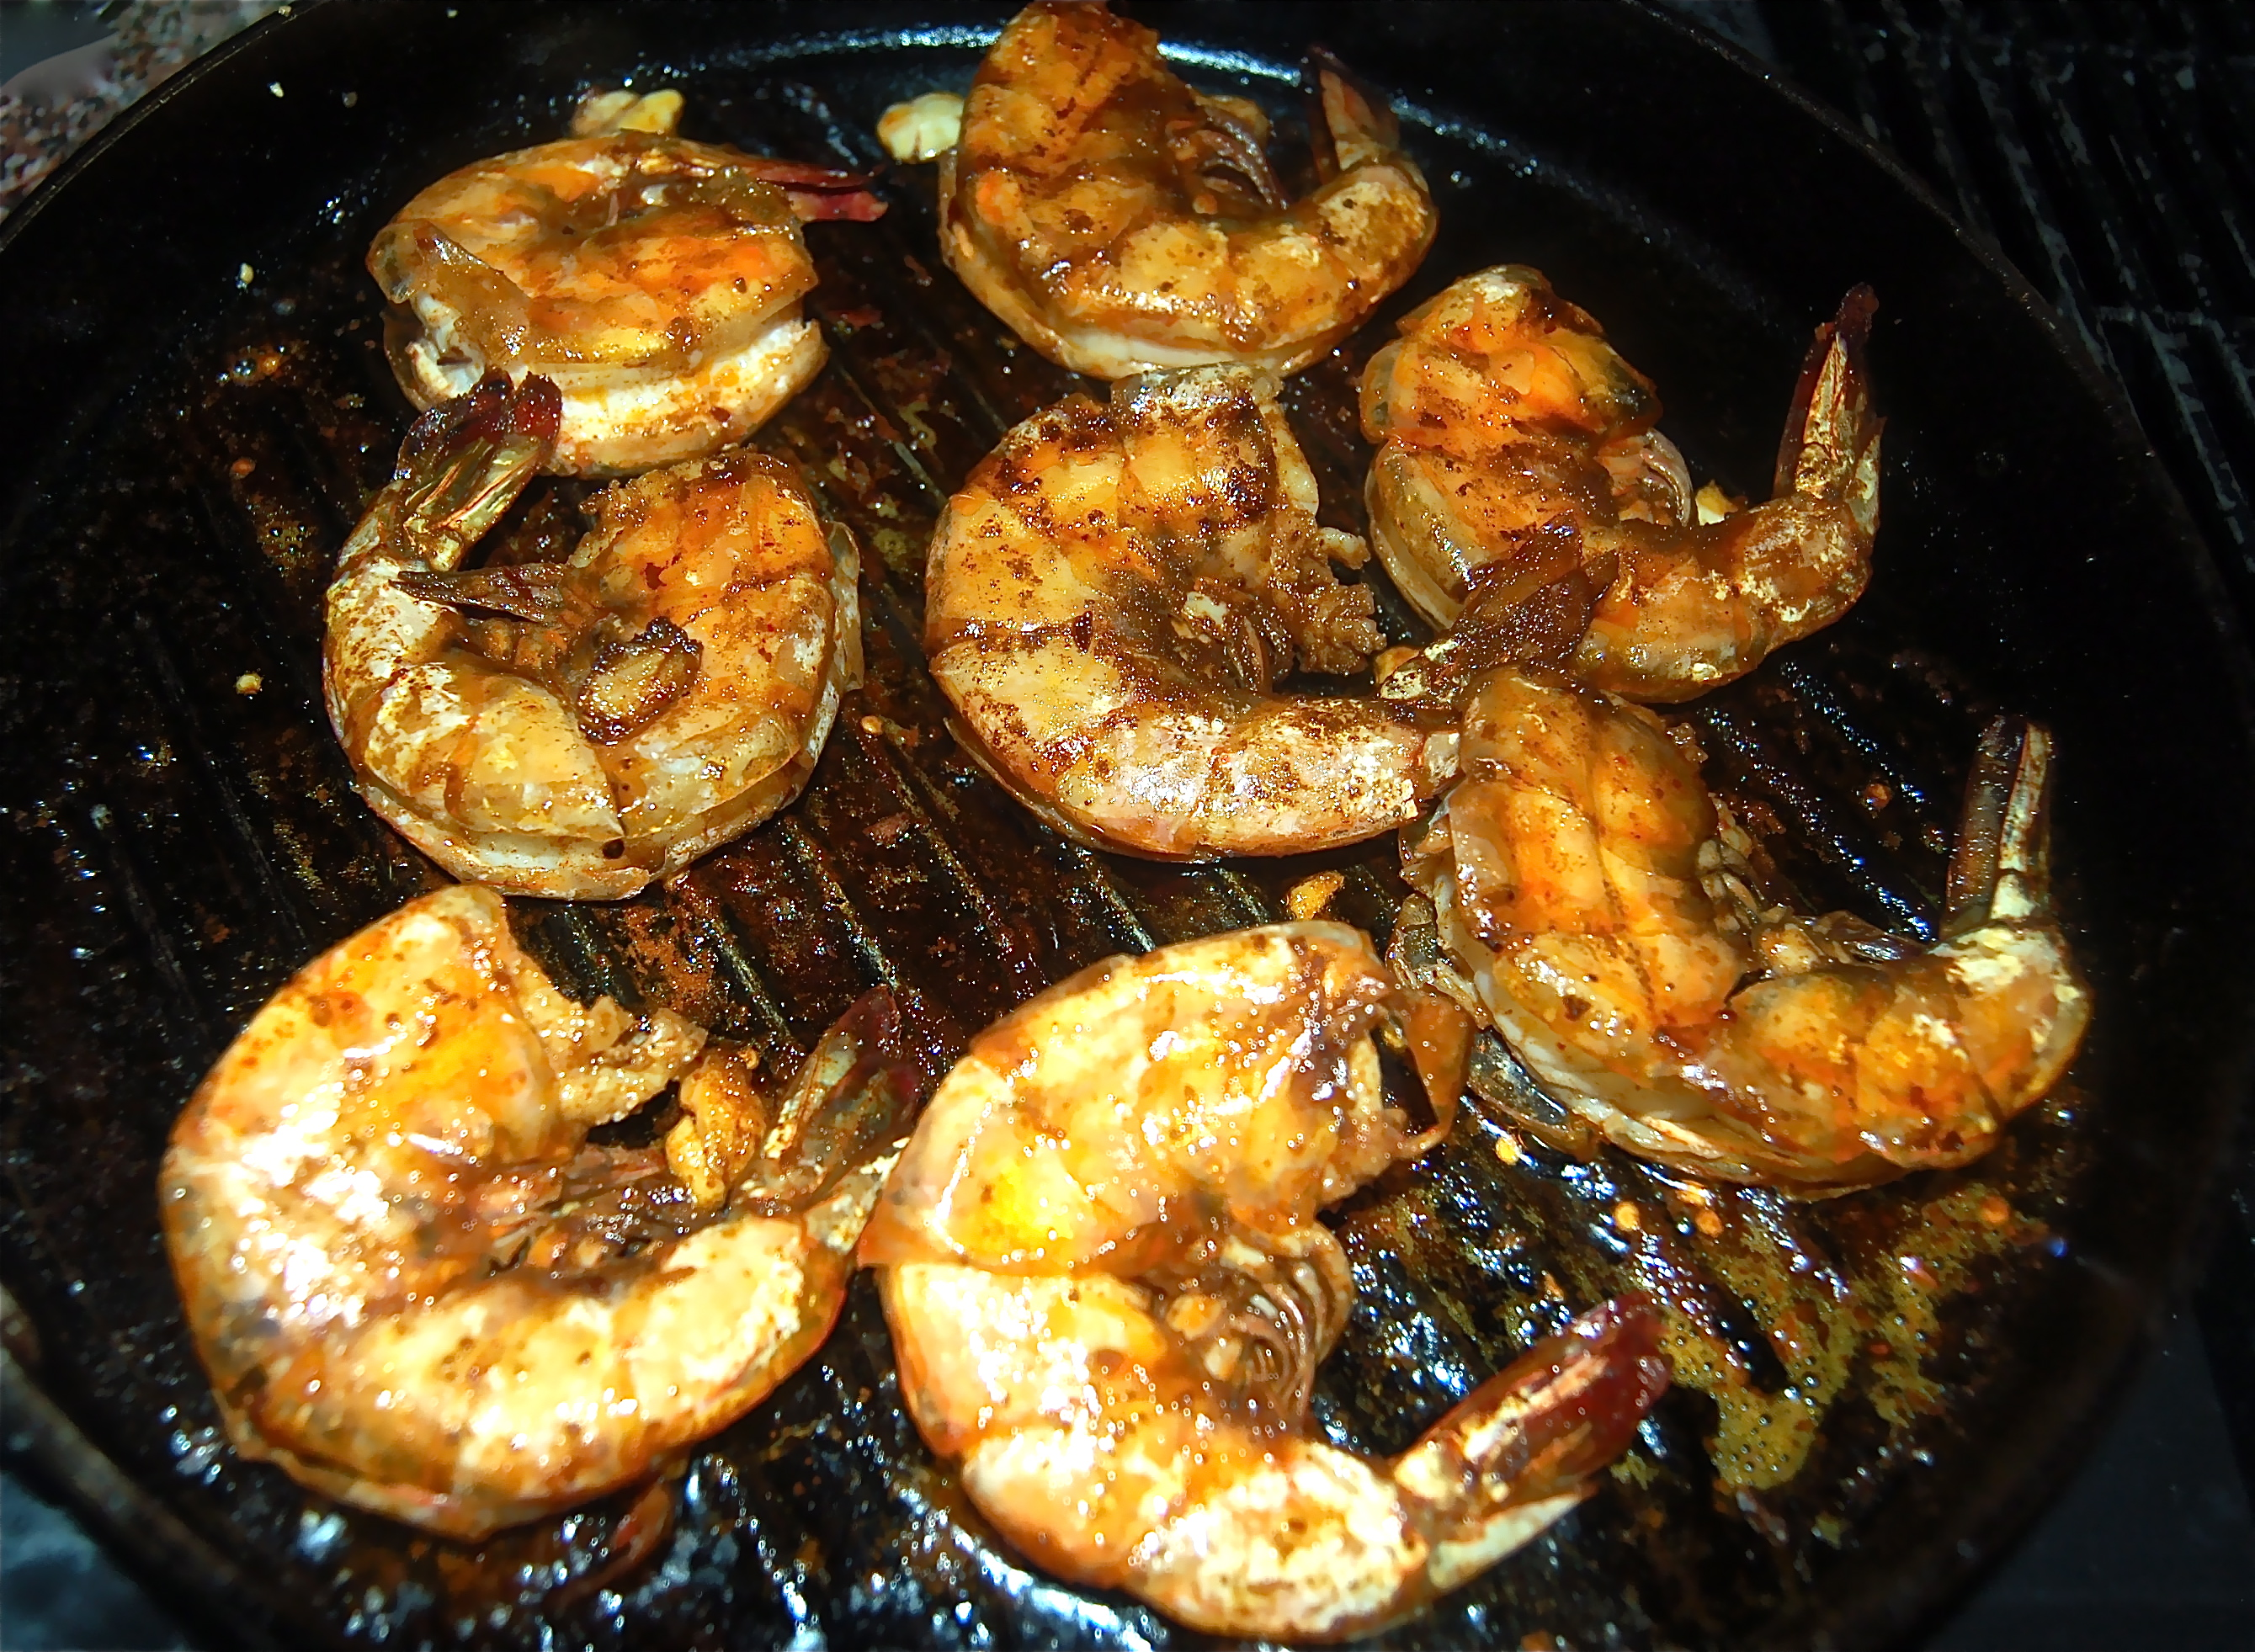 Colossal Size Shrimp Grilled In a Cast Iron Pan   CookTeaser